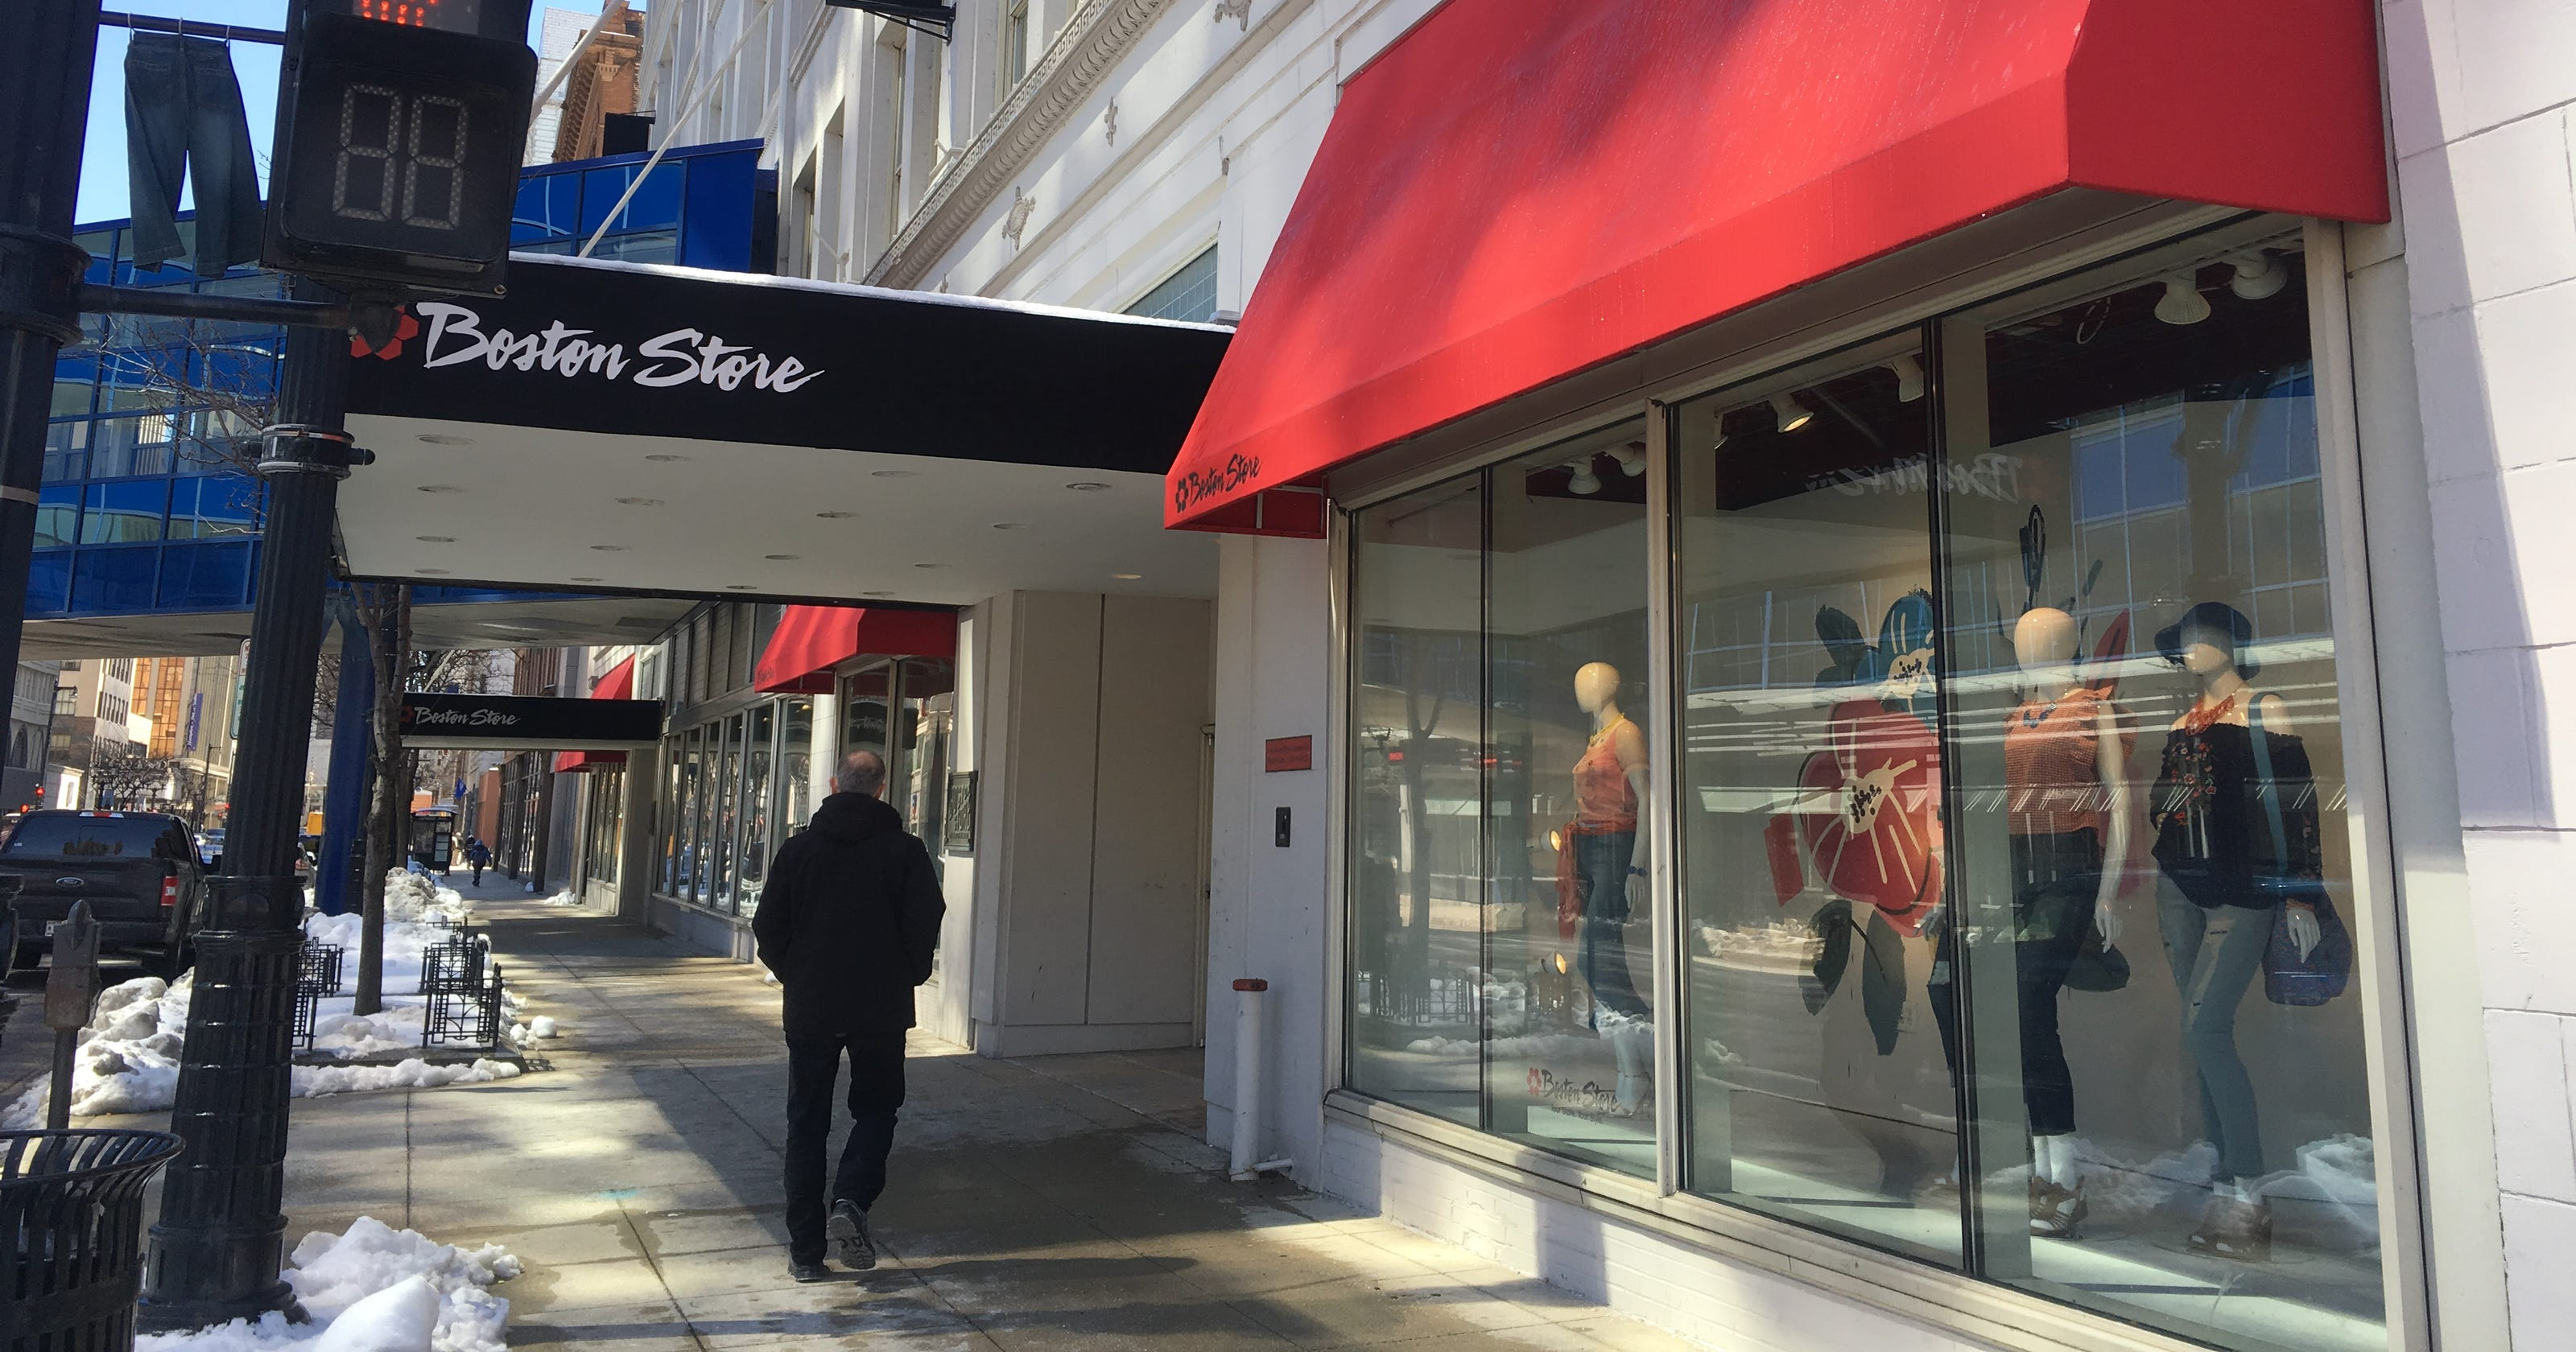 Apr 20, · Watch video· Liquidation sale at Boston Store, Bon-Ton, Younkers stores starts Friday. The sale will include stores under various names, all owned by Bon-Ton stores.